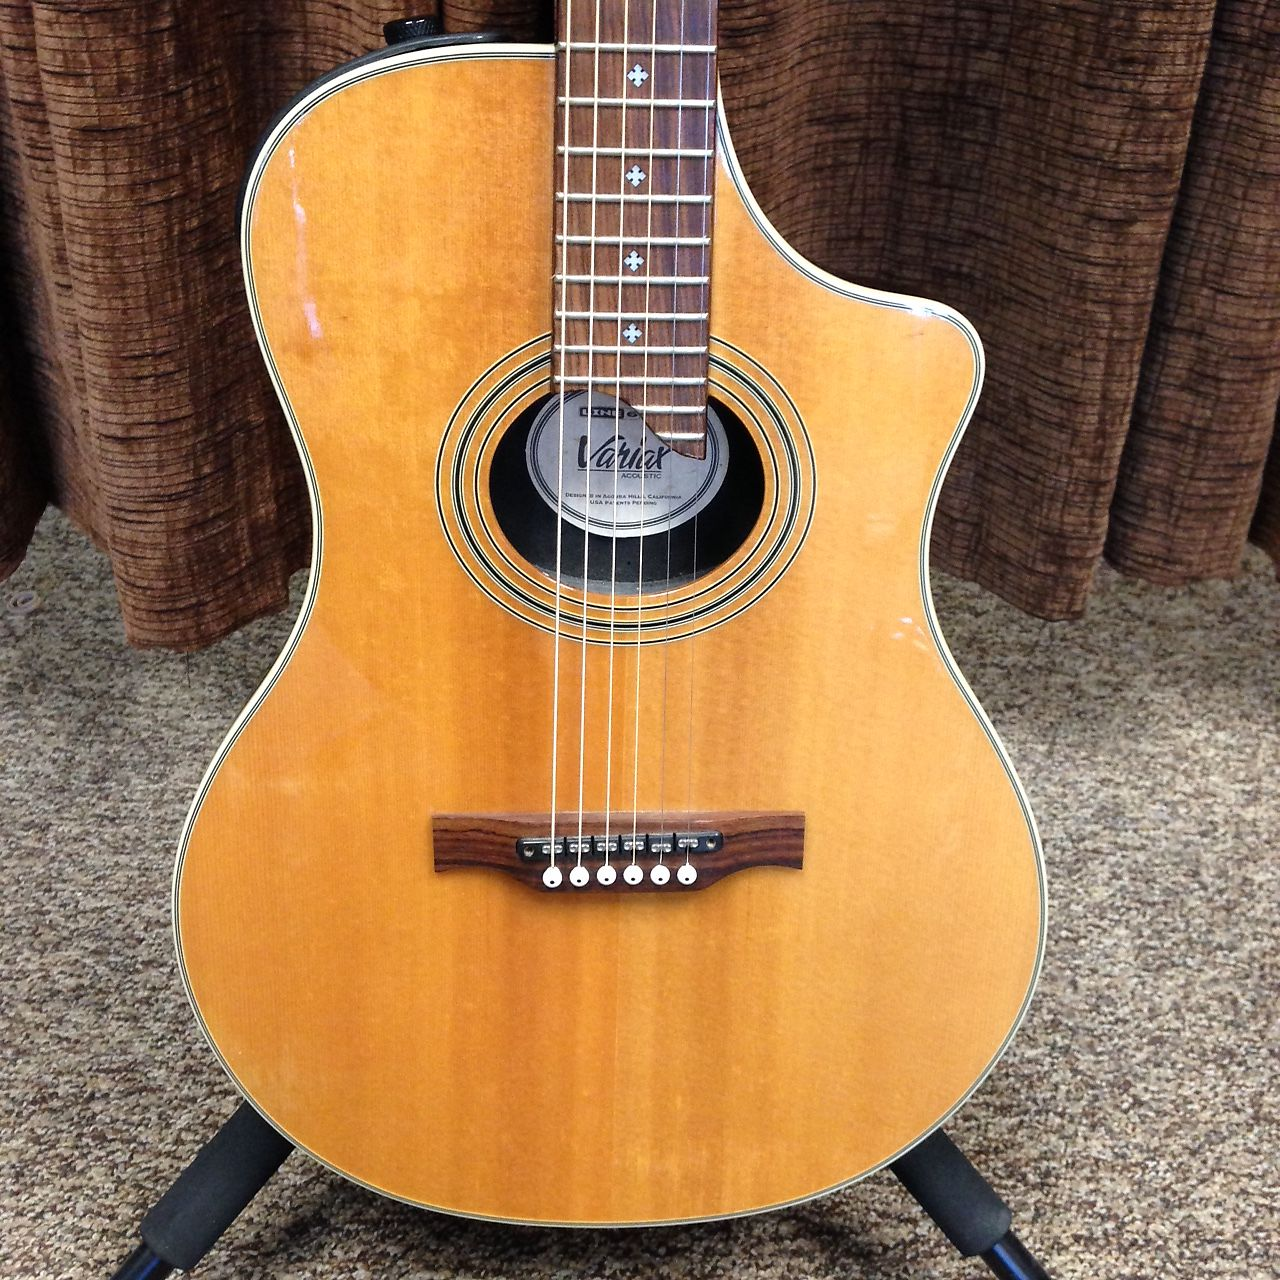 Line 6 Variax 700 Acoustic Natural Modeling Guitar With Gigbag